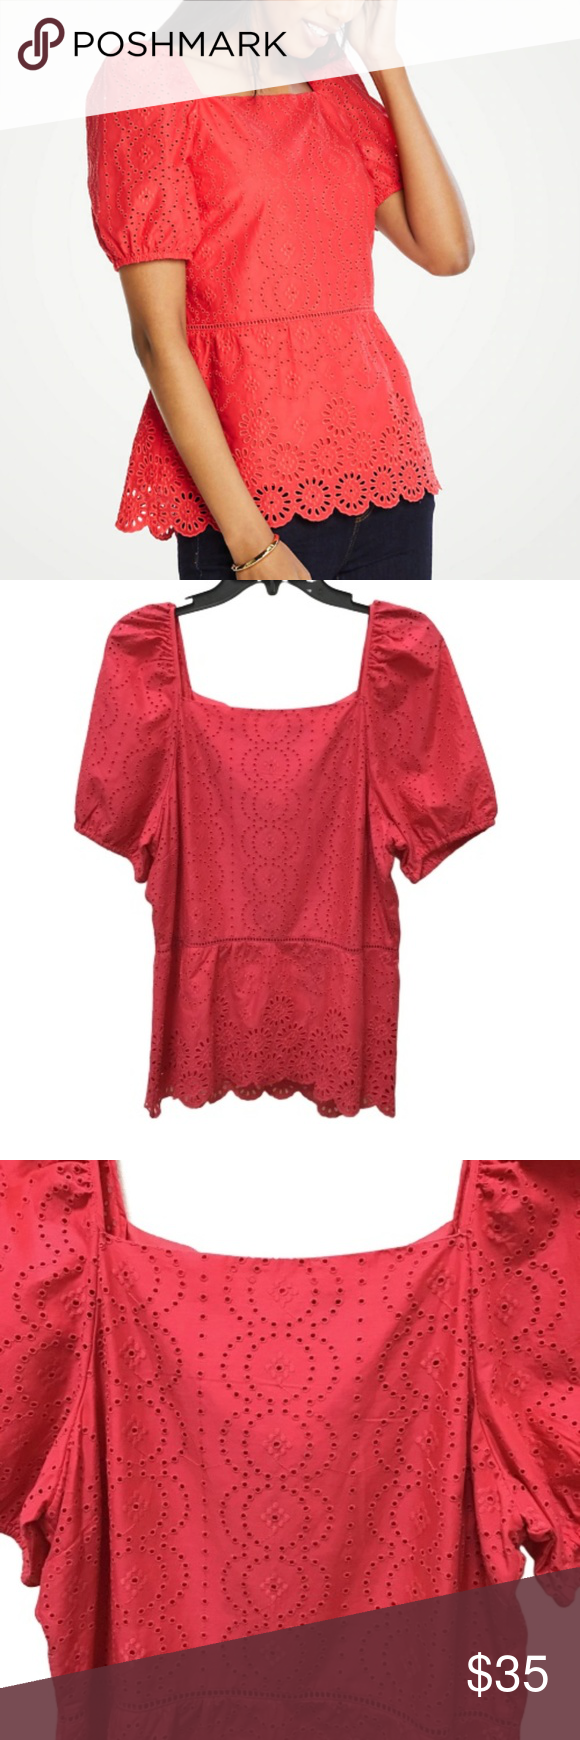 Anthropologie Tops | Anthropologie Clovelly Scalloped